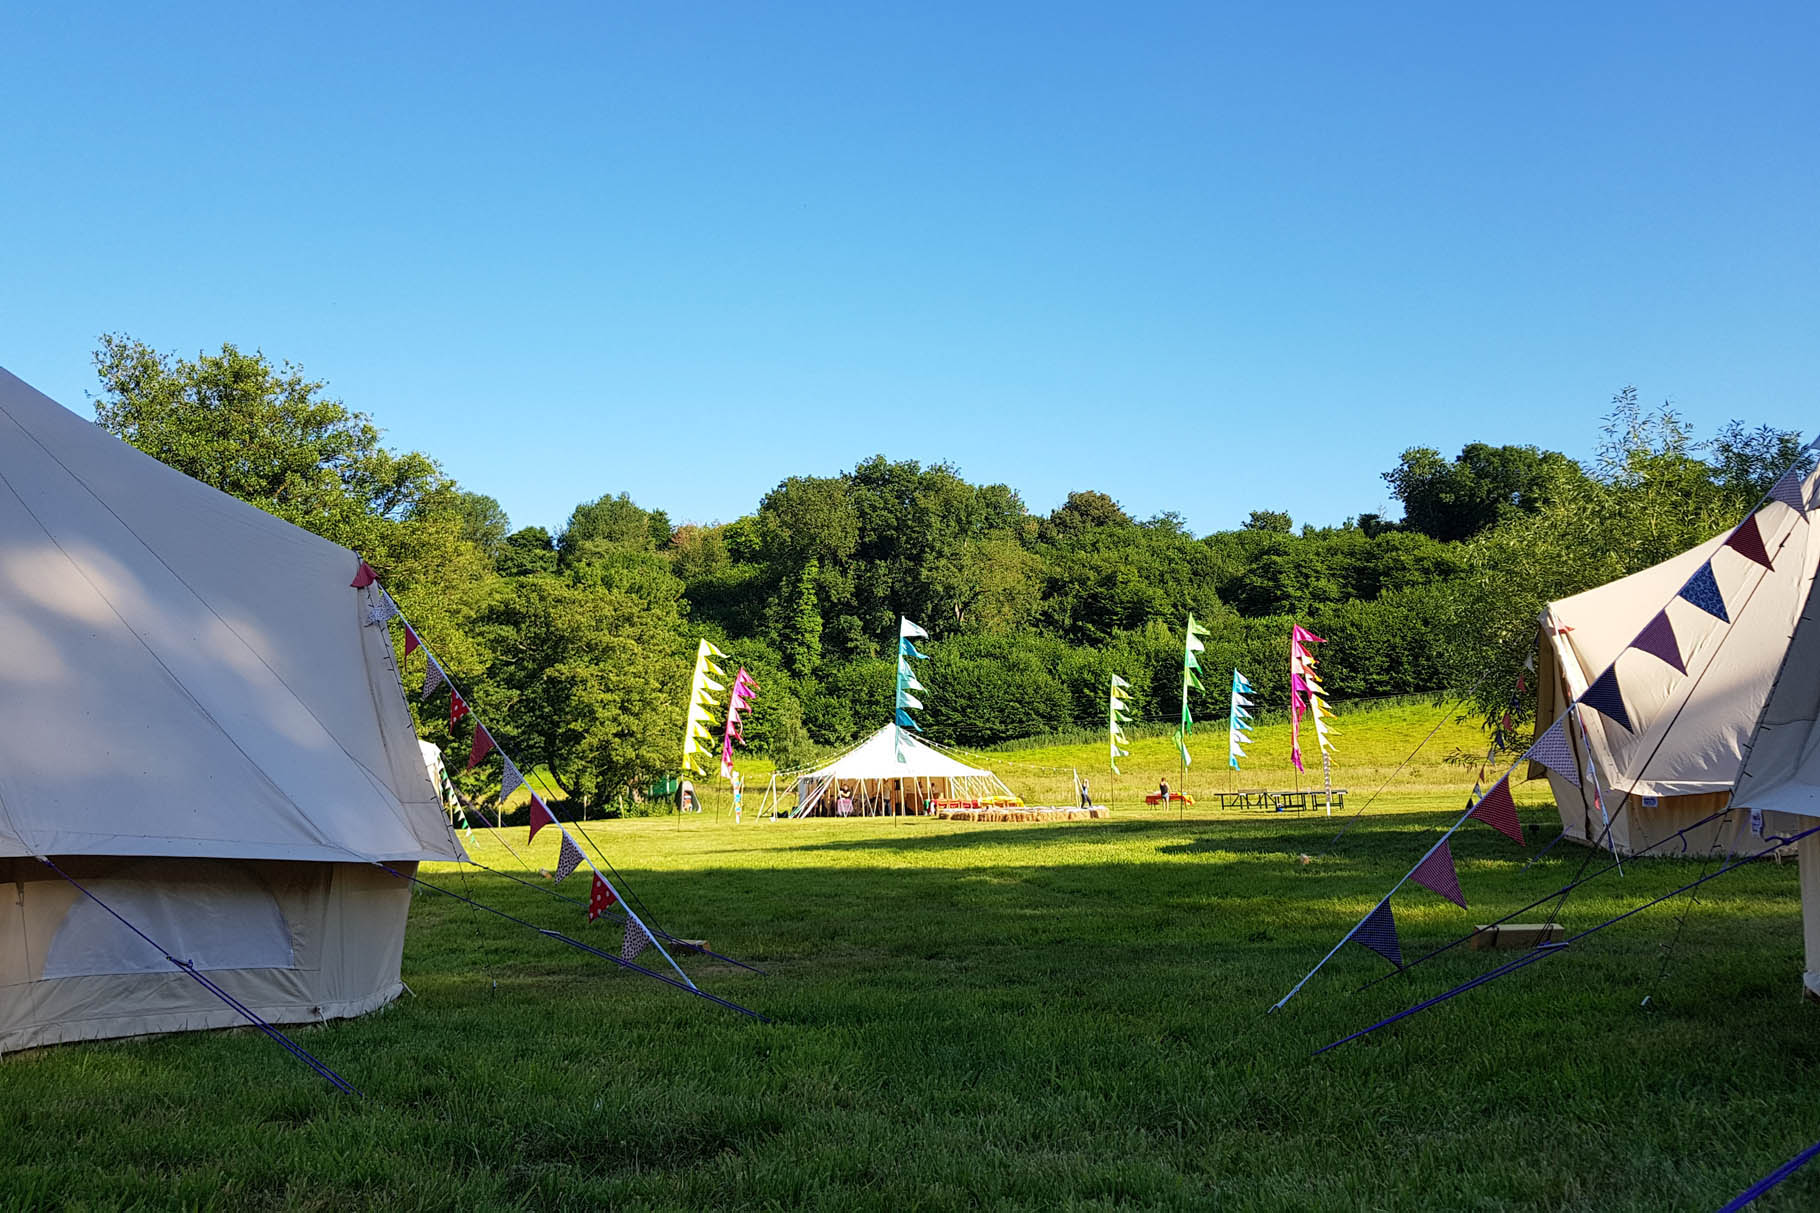 Tipi in a walled garden